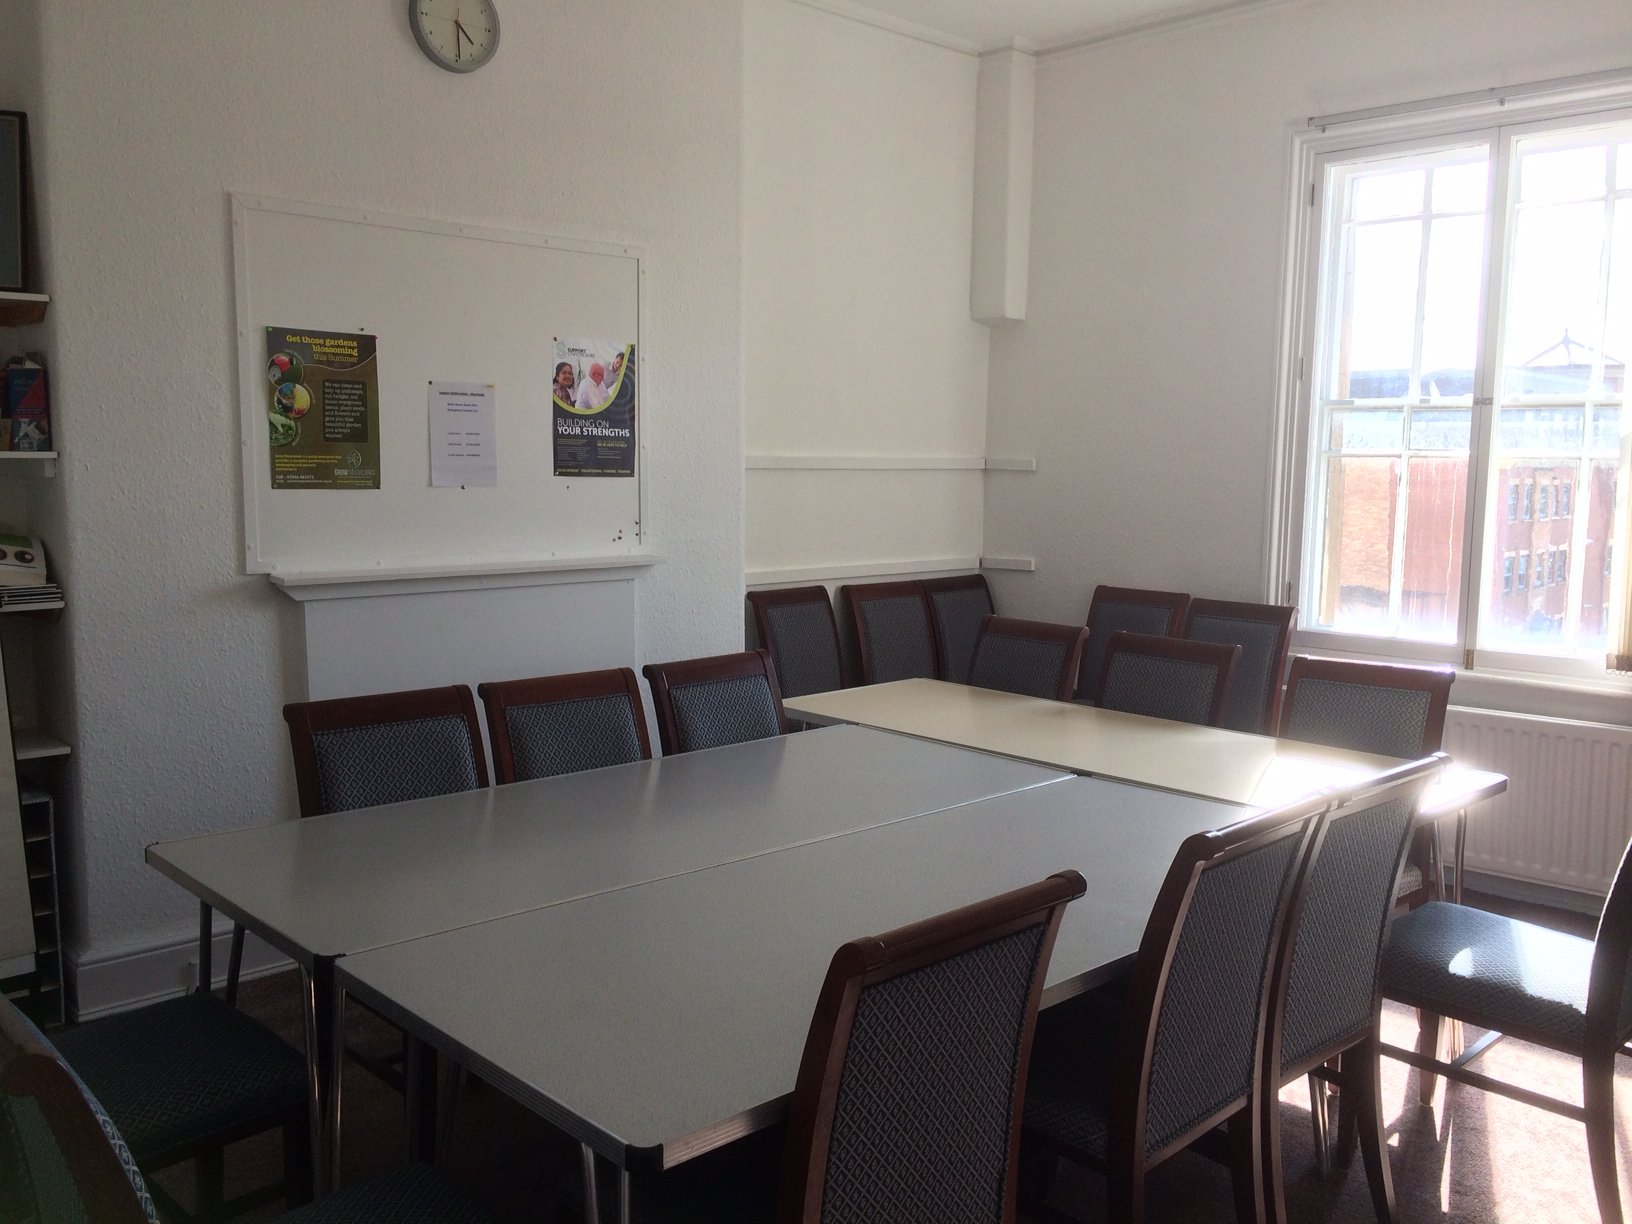 Support Staffordshire Bank House meeting room hire in Leek